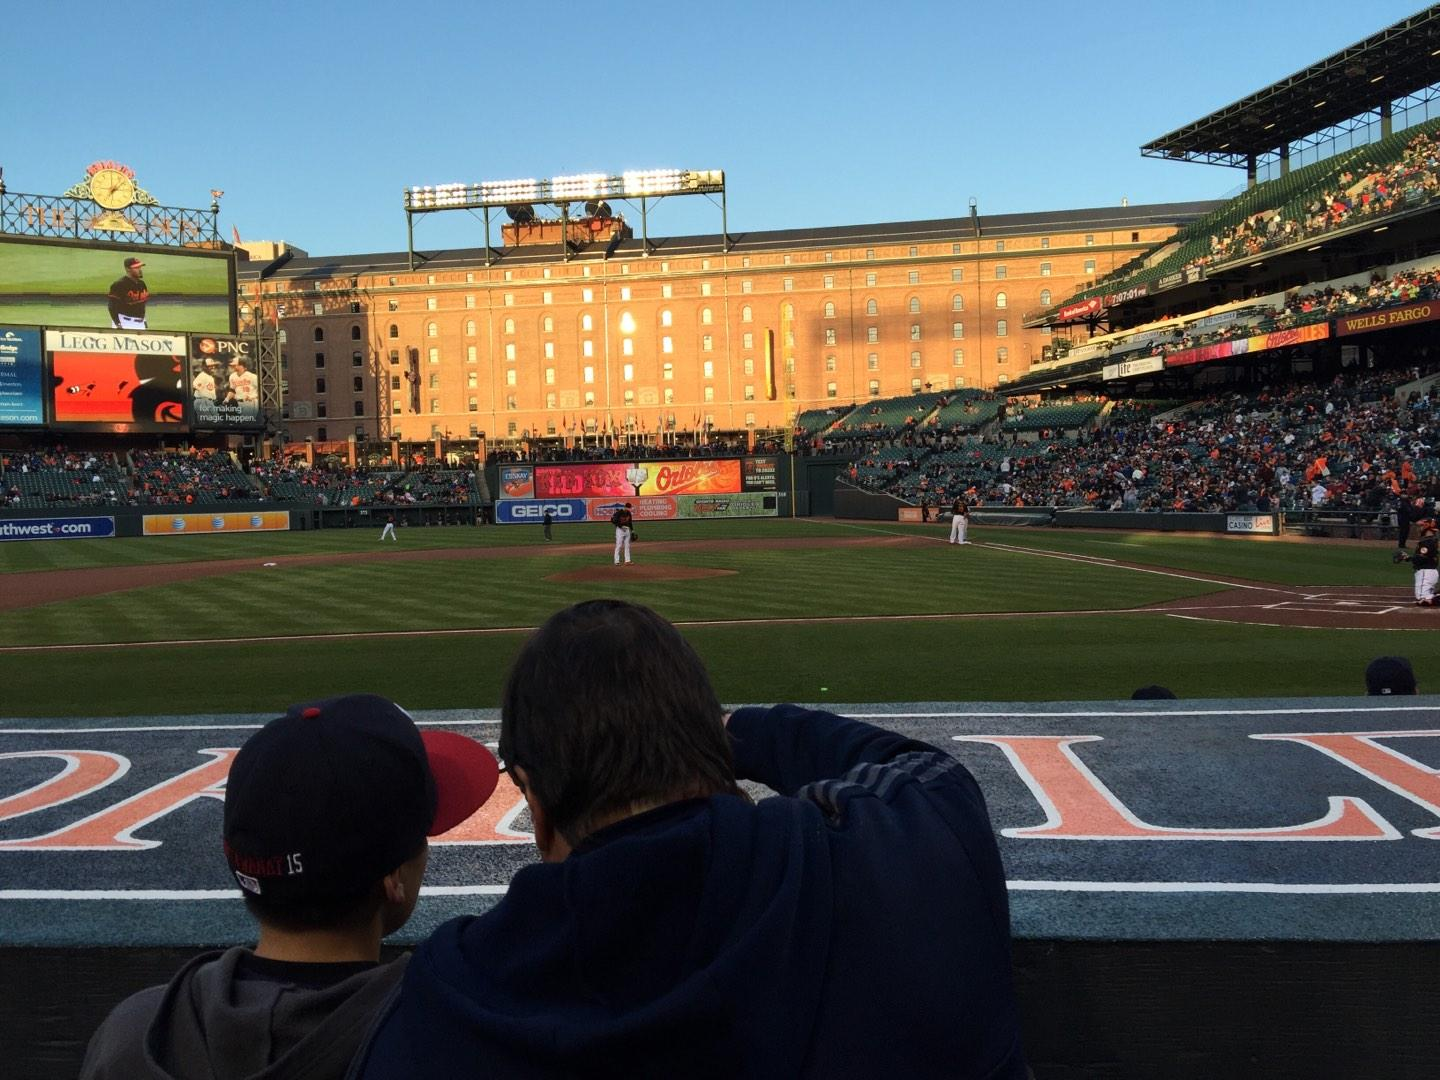 Oriole Park at Camden Yards Section 50 Row 2 Seat 1/2